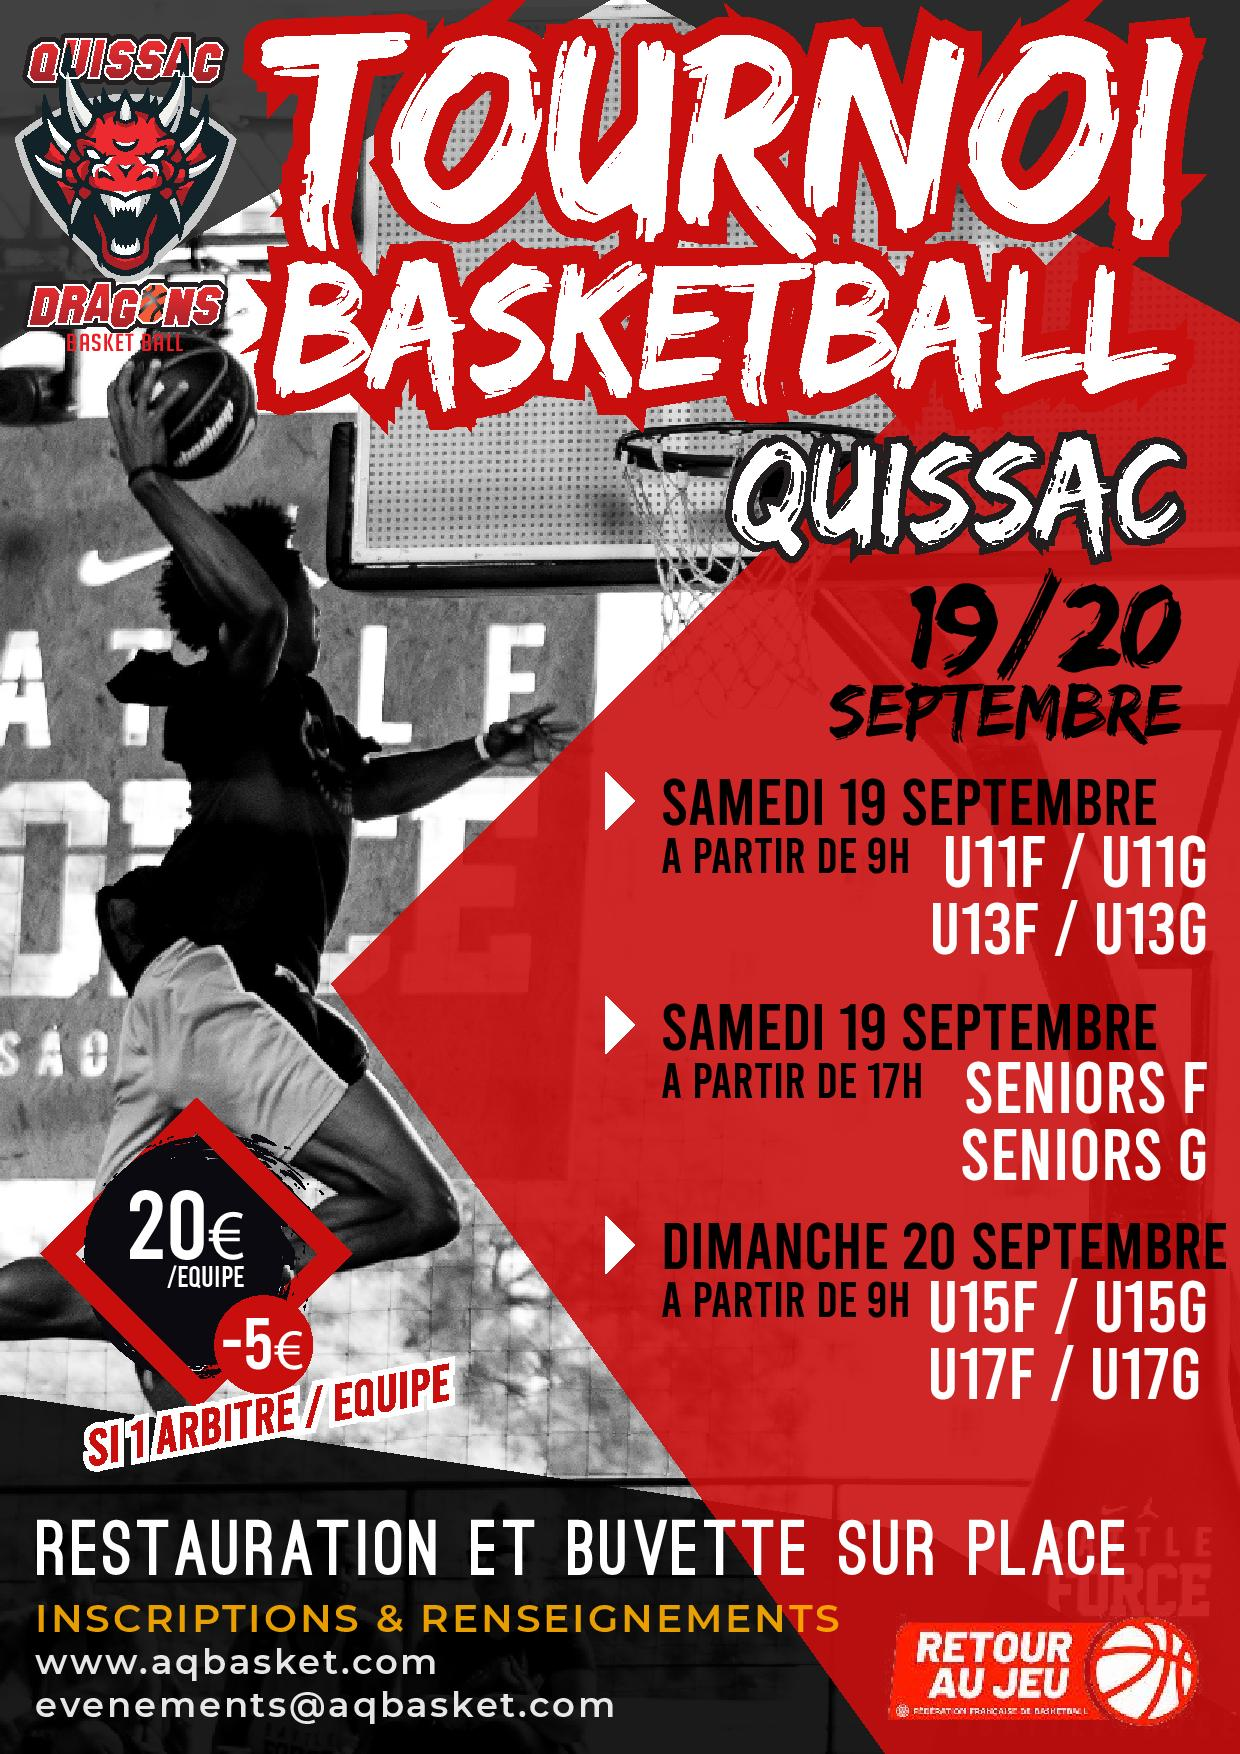 Tournoi Basketball Quissac 19_20_2020-page-001.jpg (393 KB)